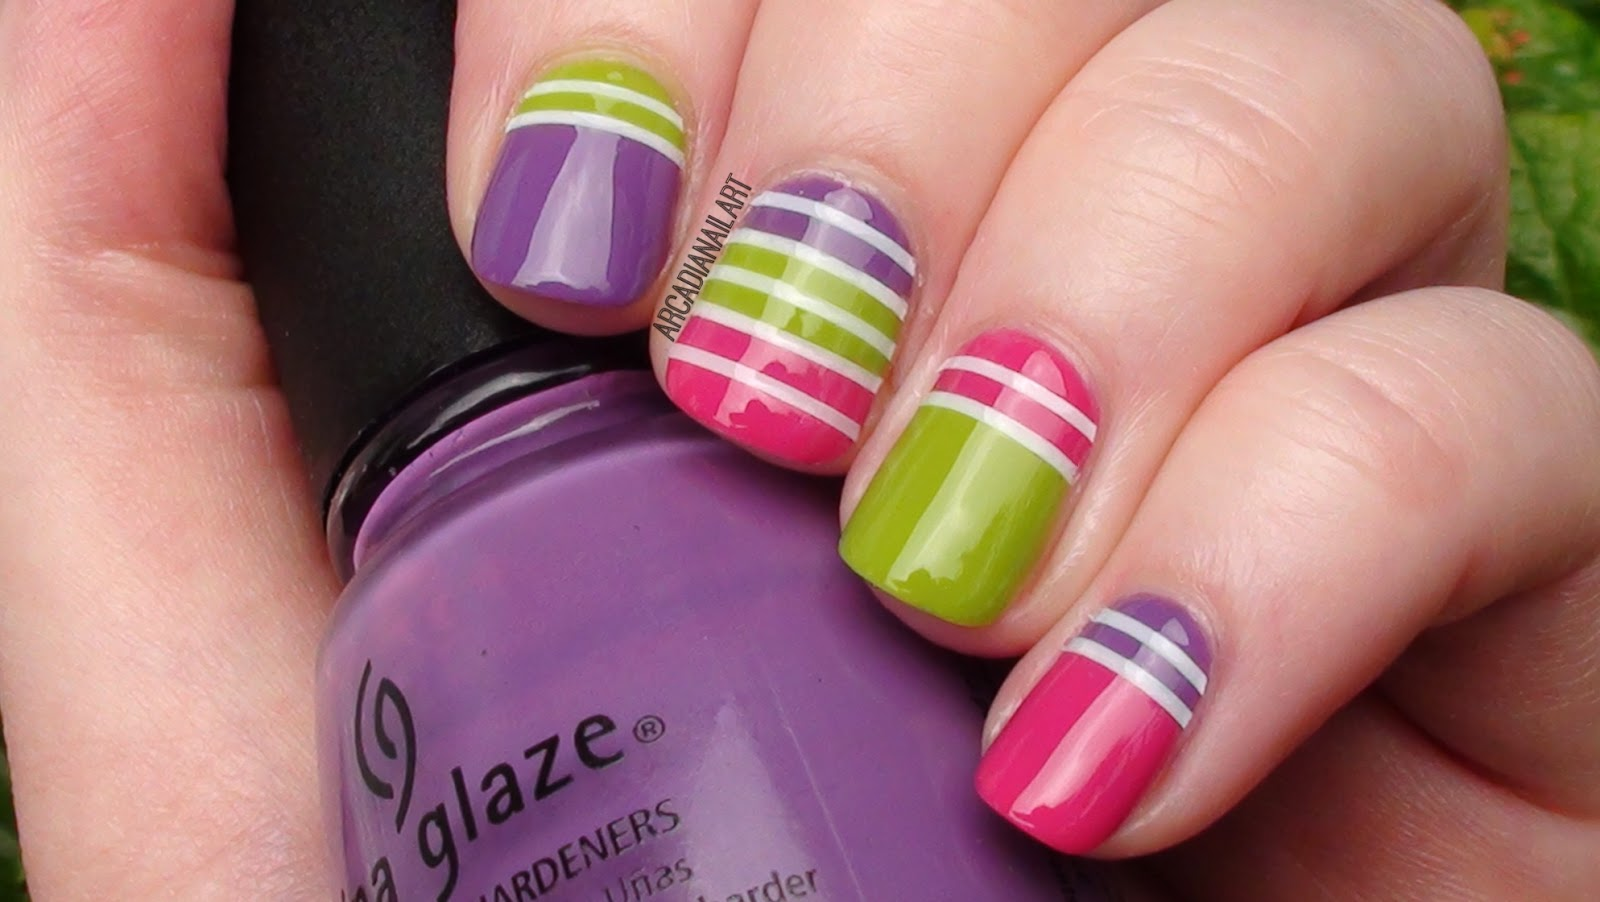 Fun Colorful Nails Using Striping Tape